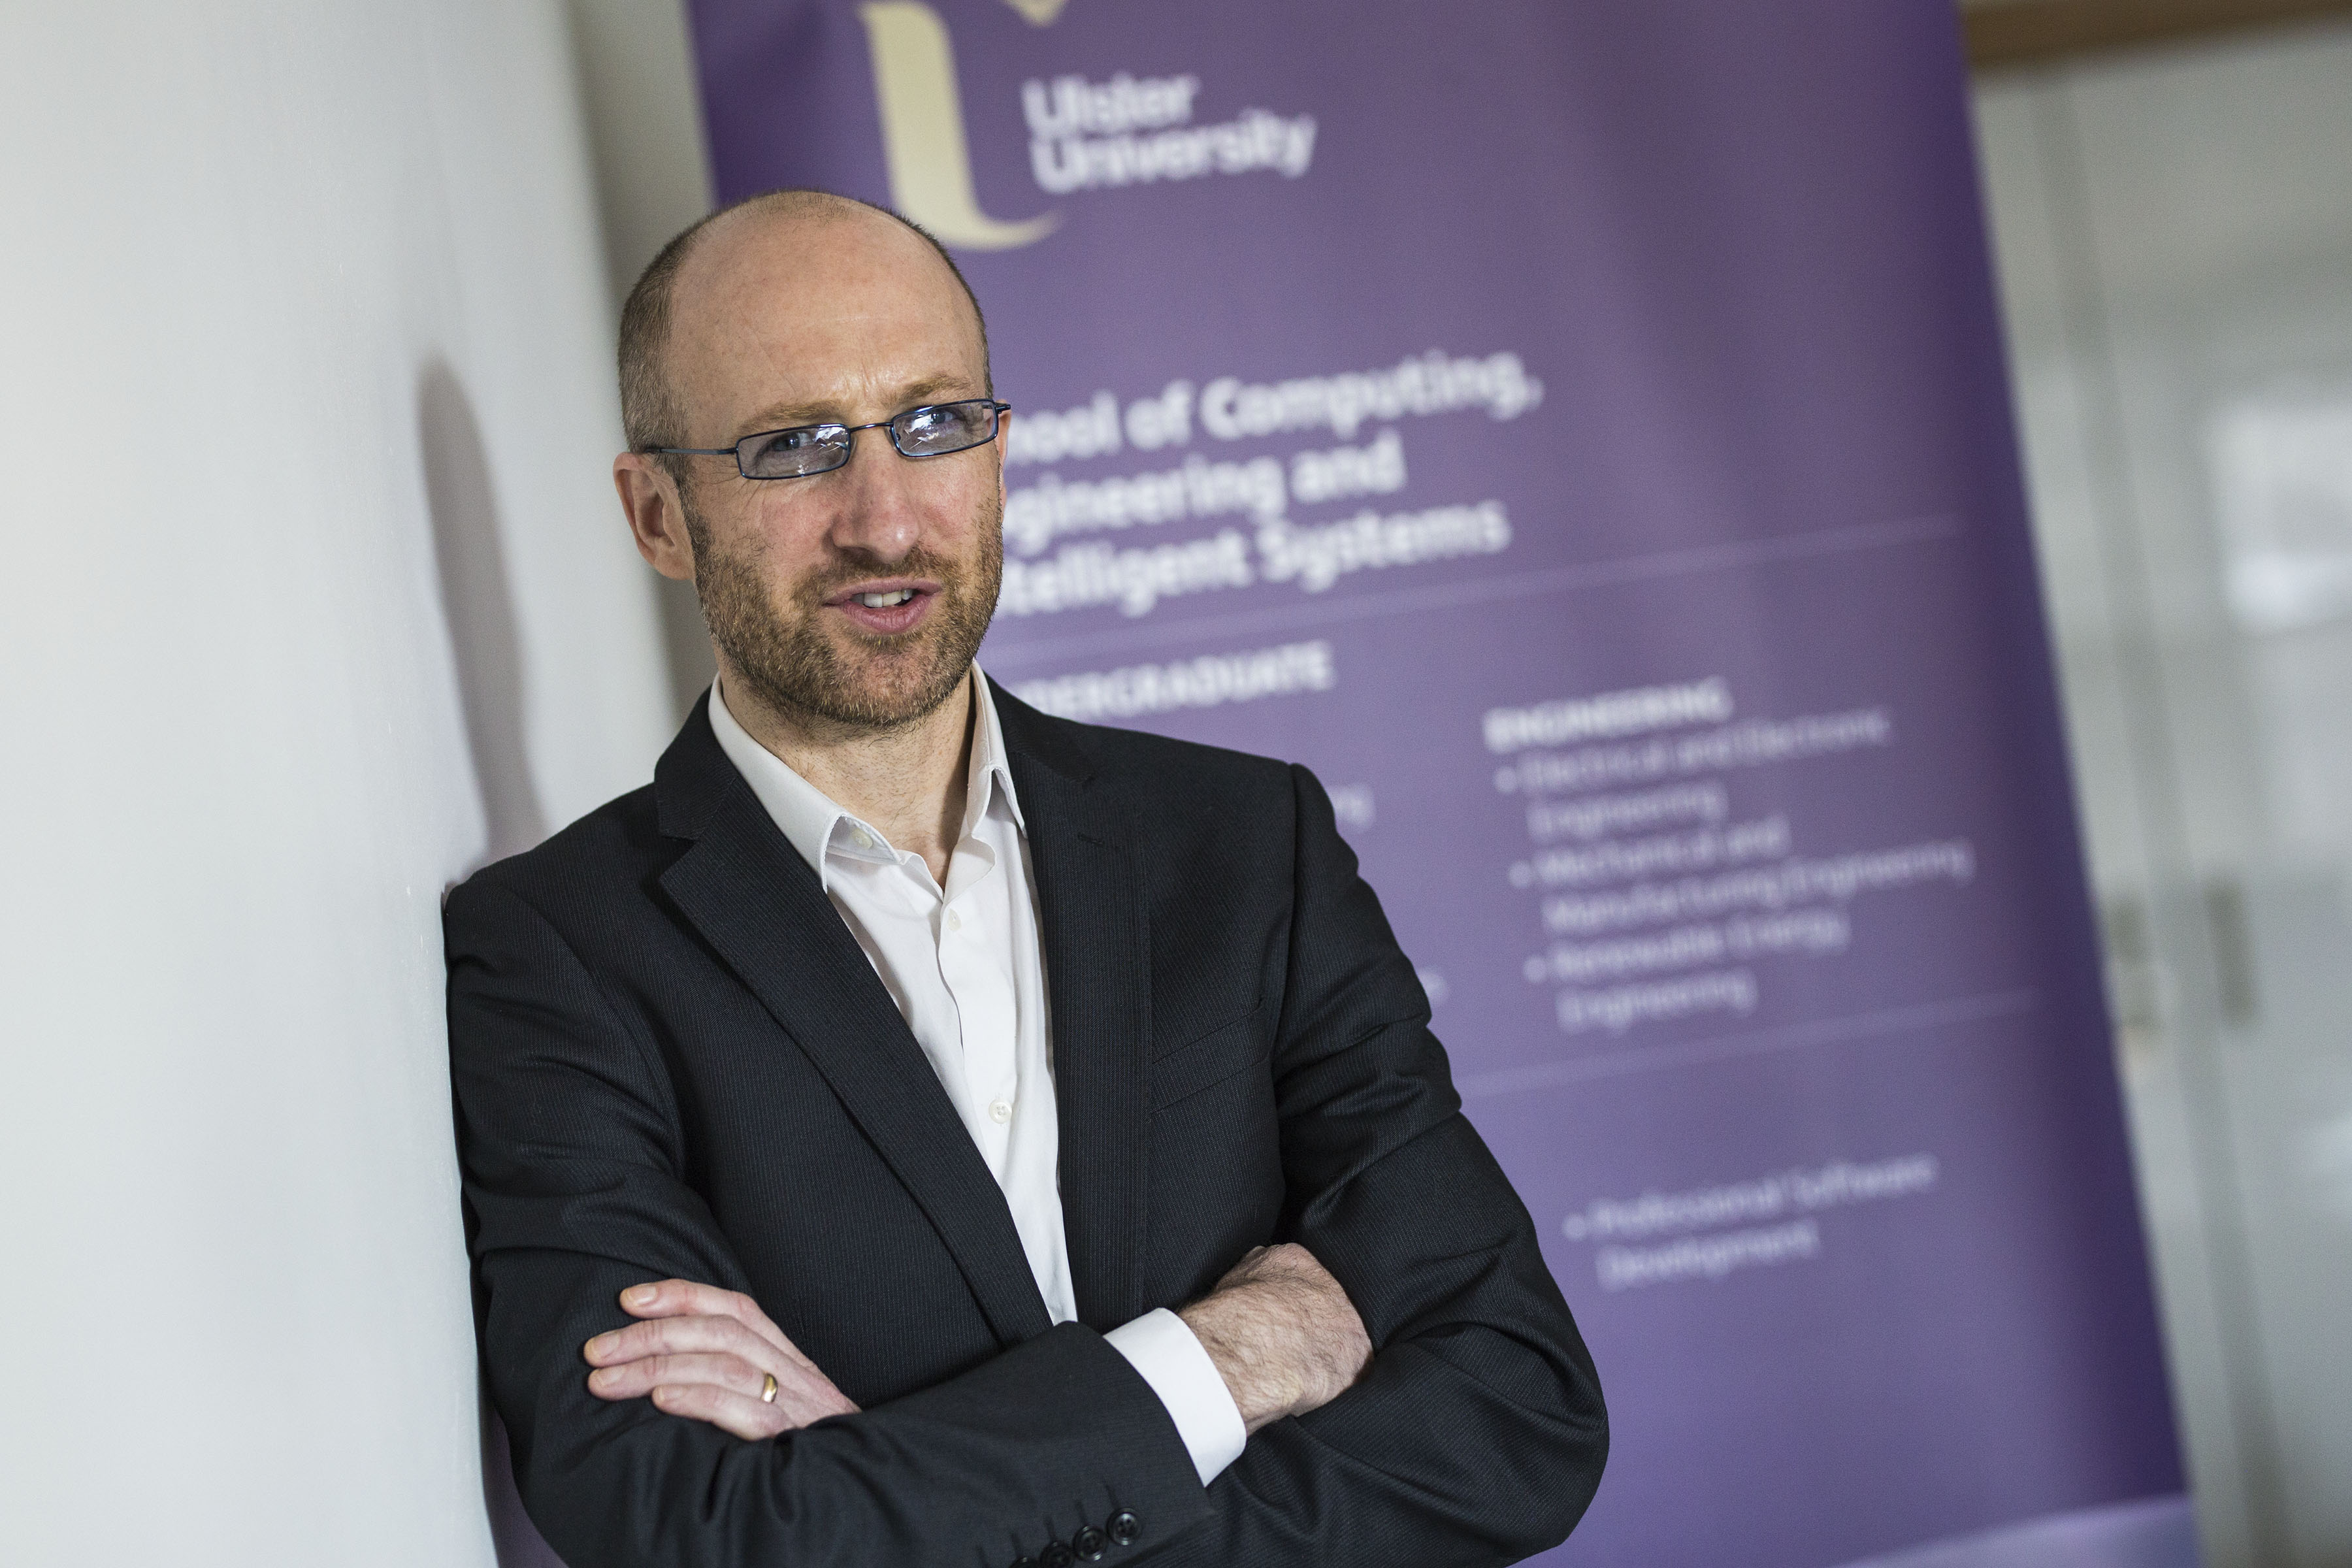 Professor Kevin Curran - Professor of Cyber Security. (Photo: Nigel McDowell/Ulster University)